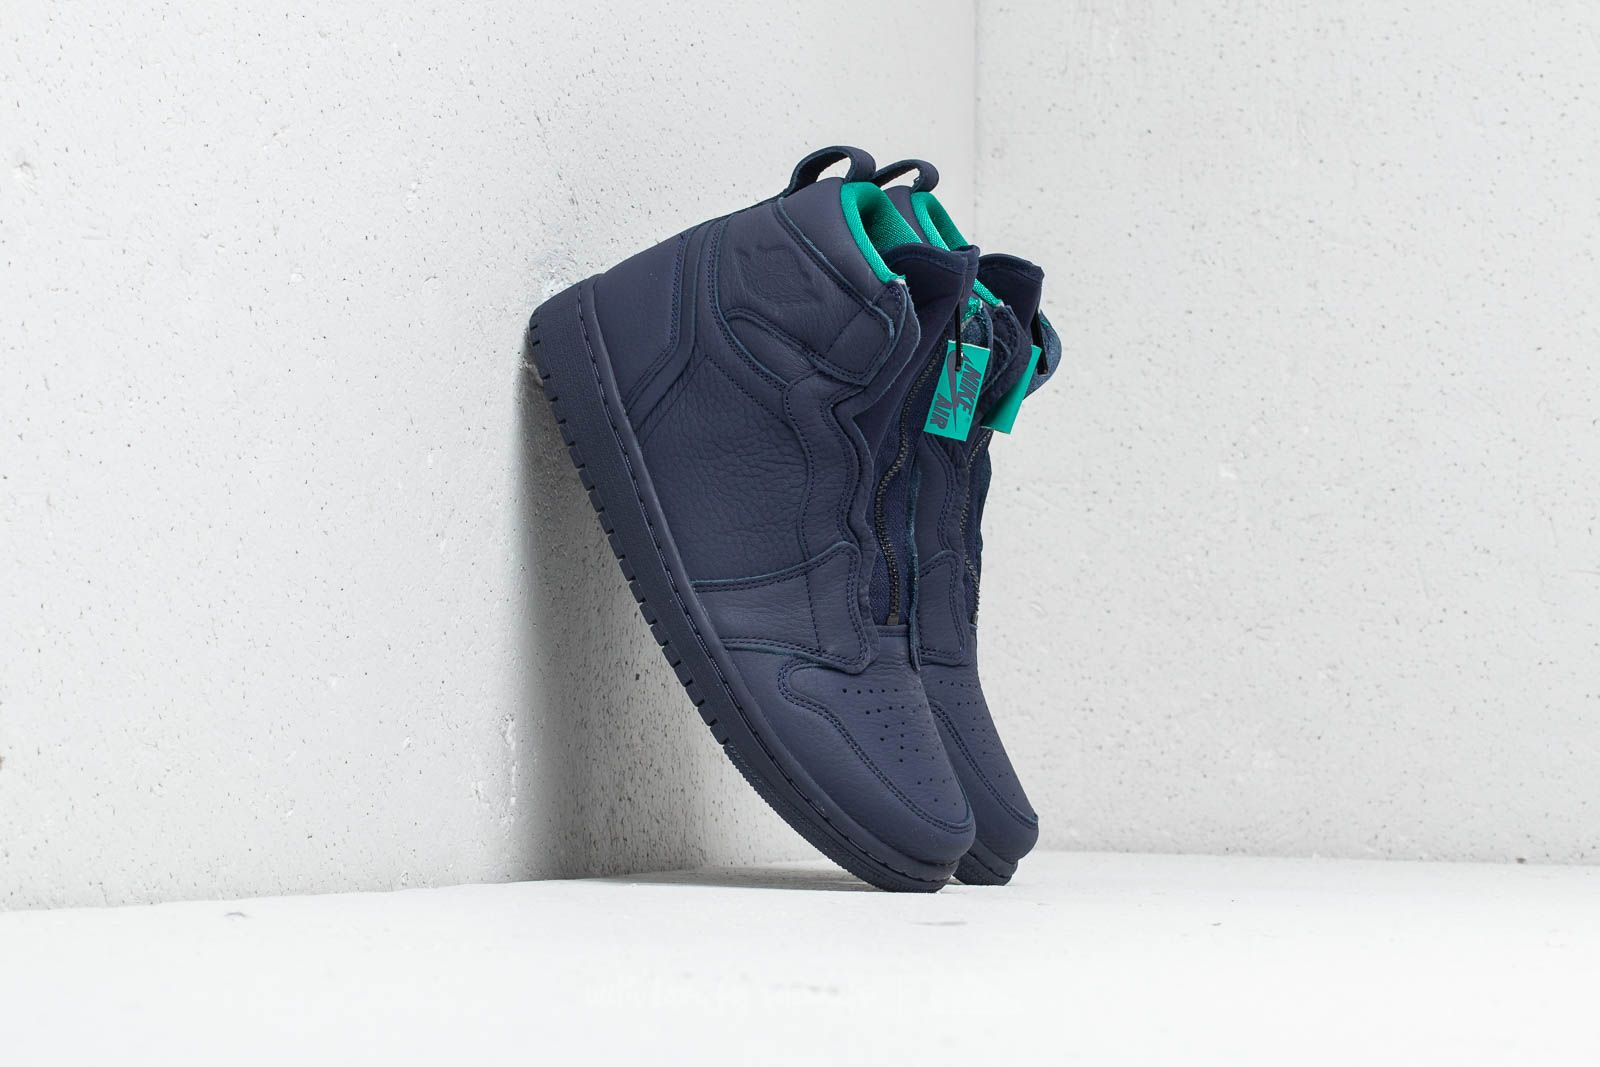 132891058eeb93 Air Jordan 1 High Zip Wmns Blackened Blue  Neptune Green